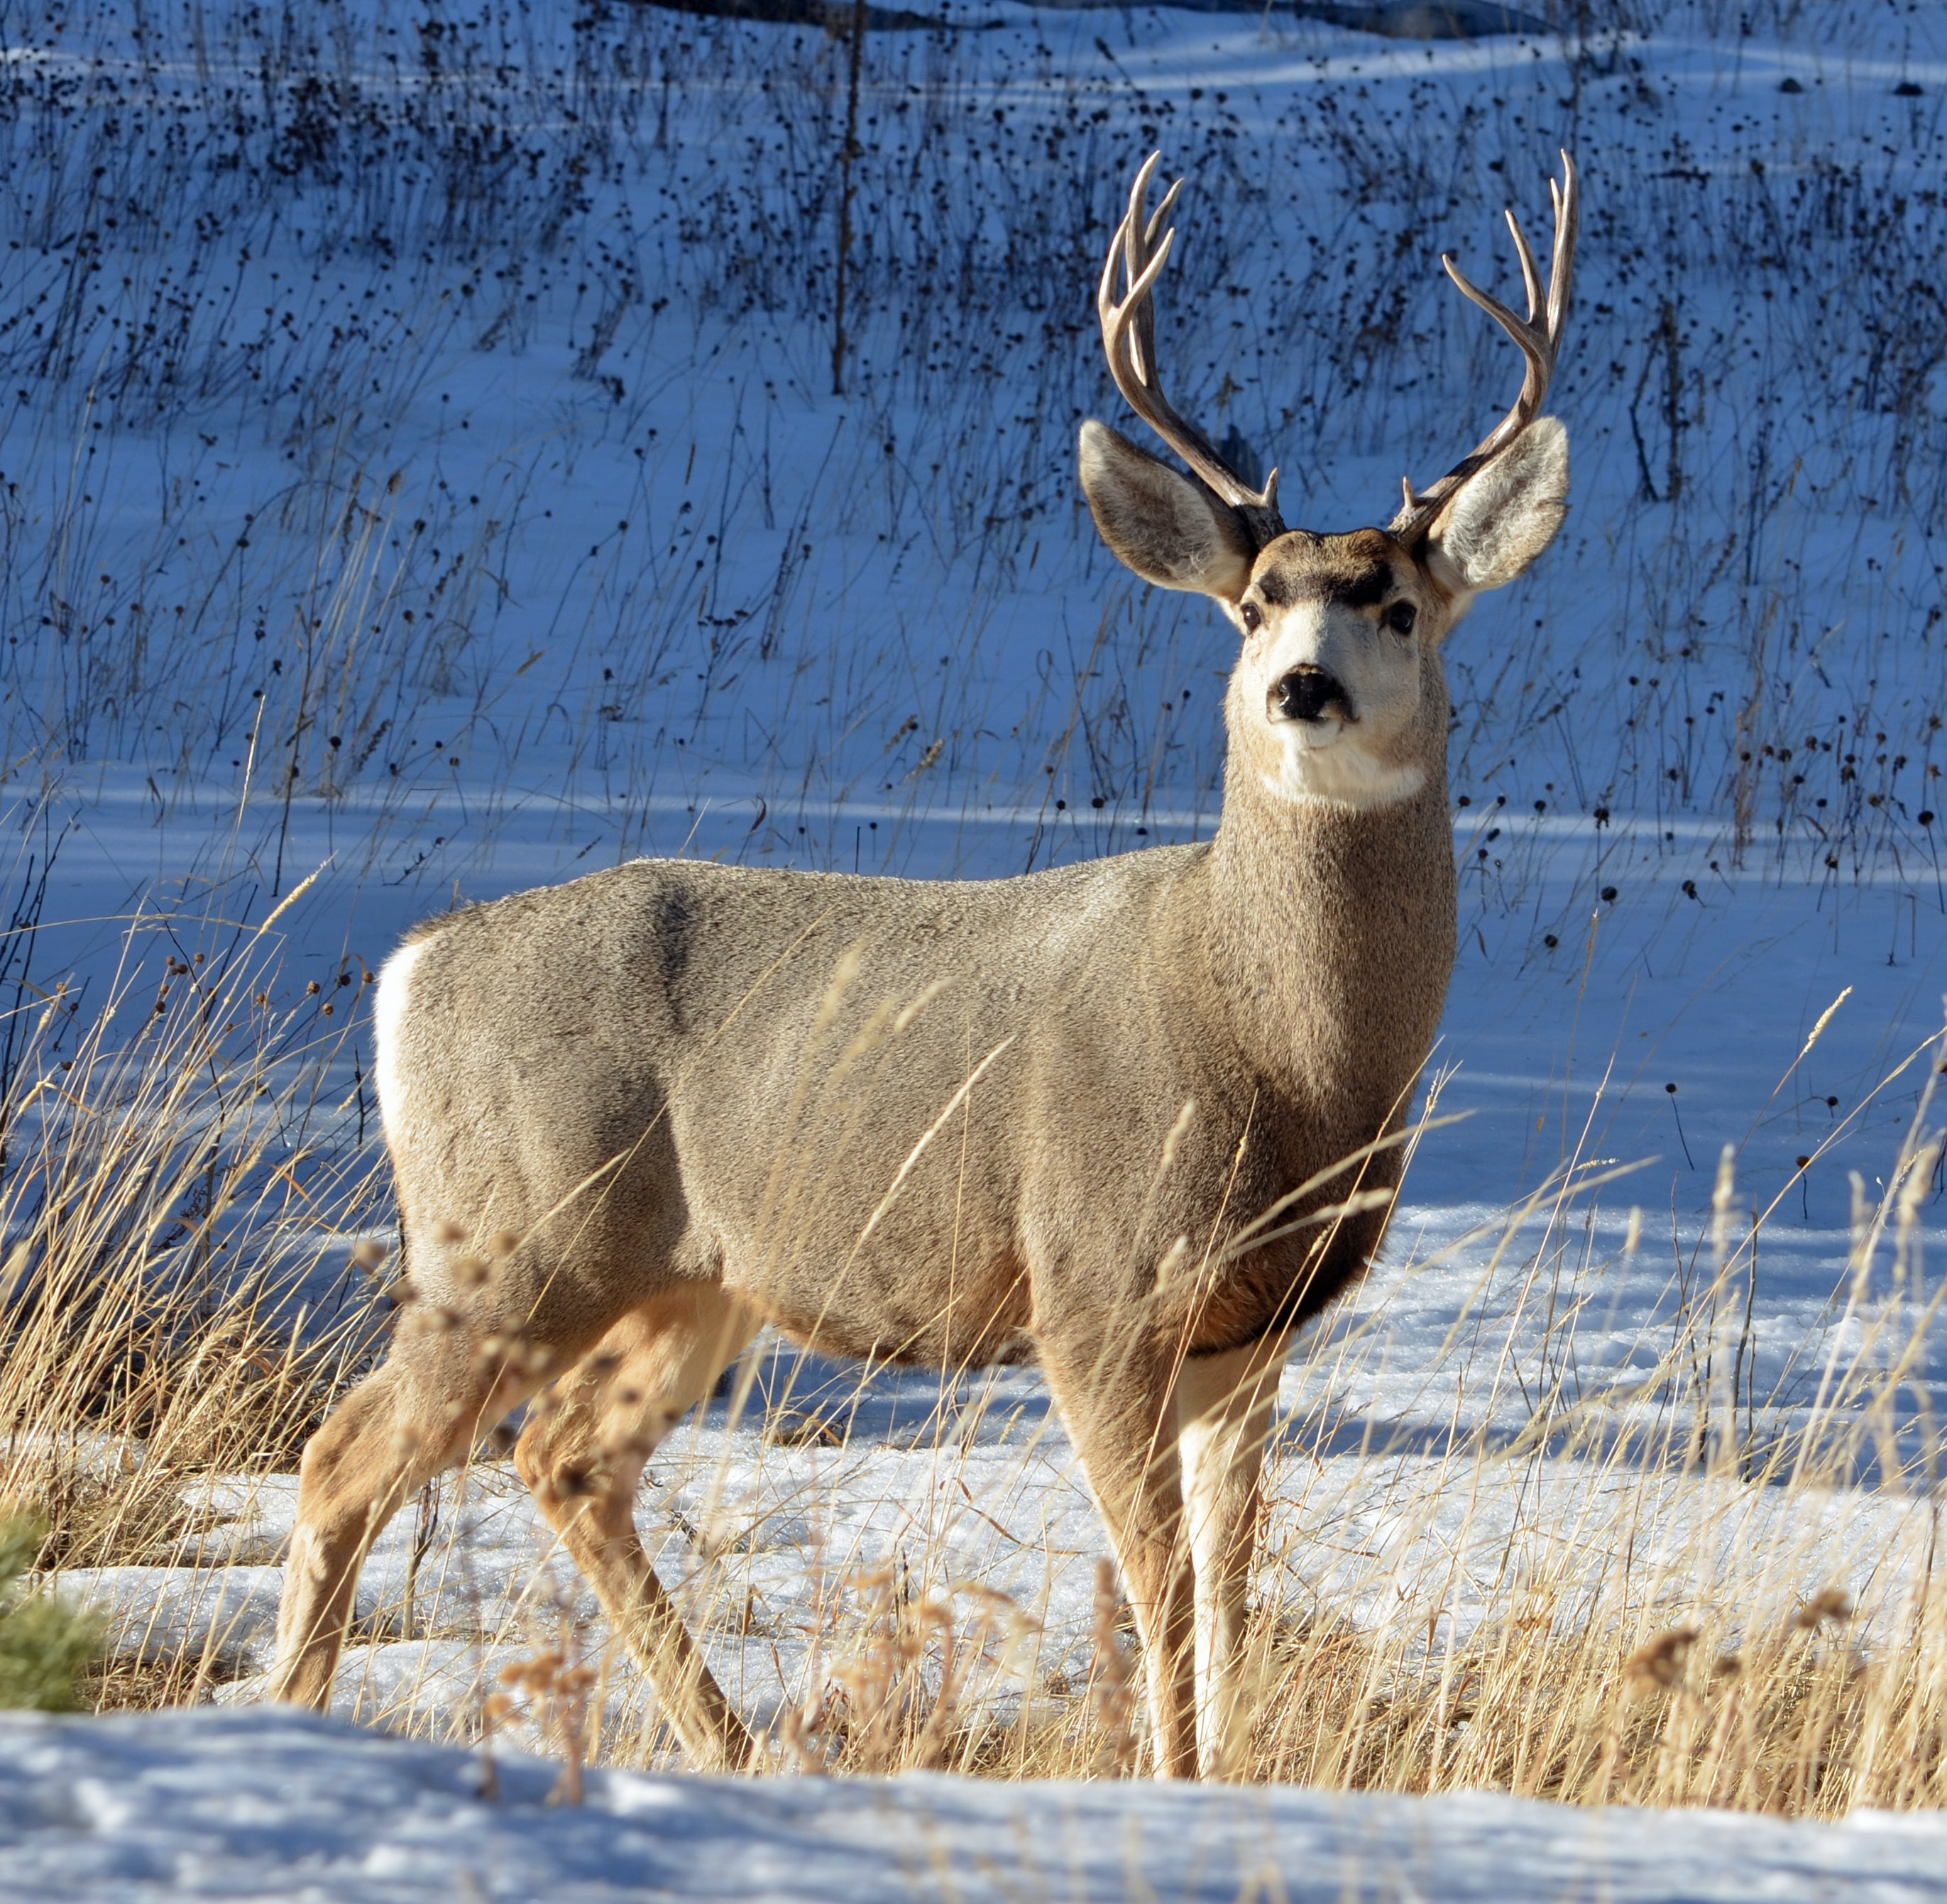 gray and white deer on snow field